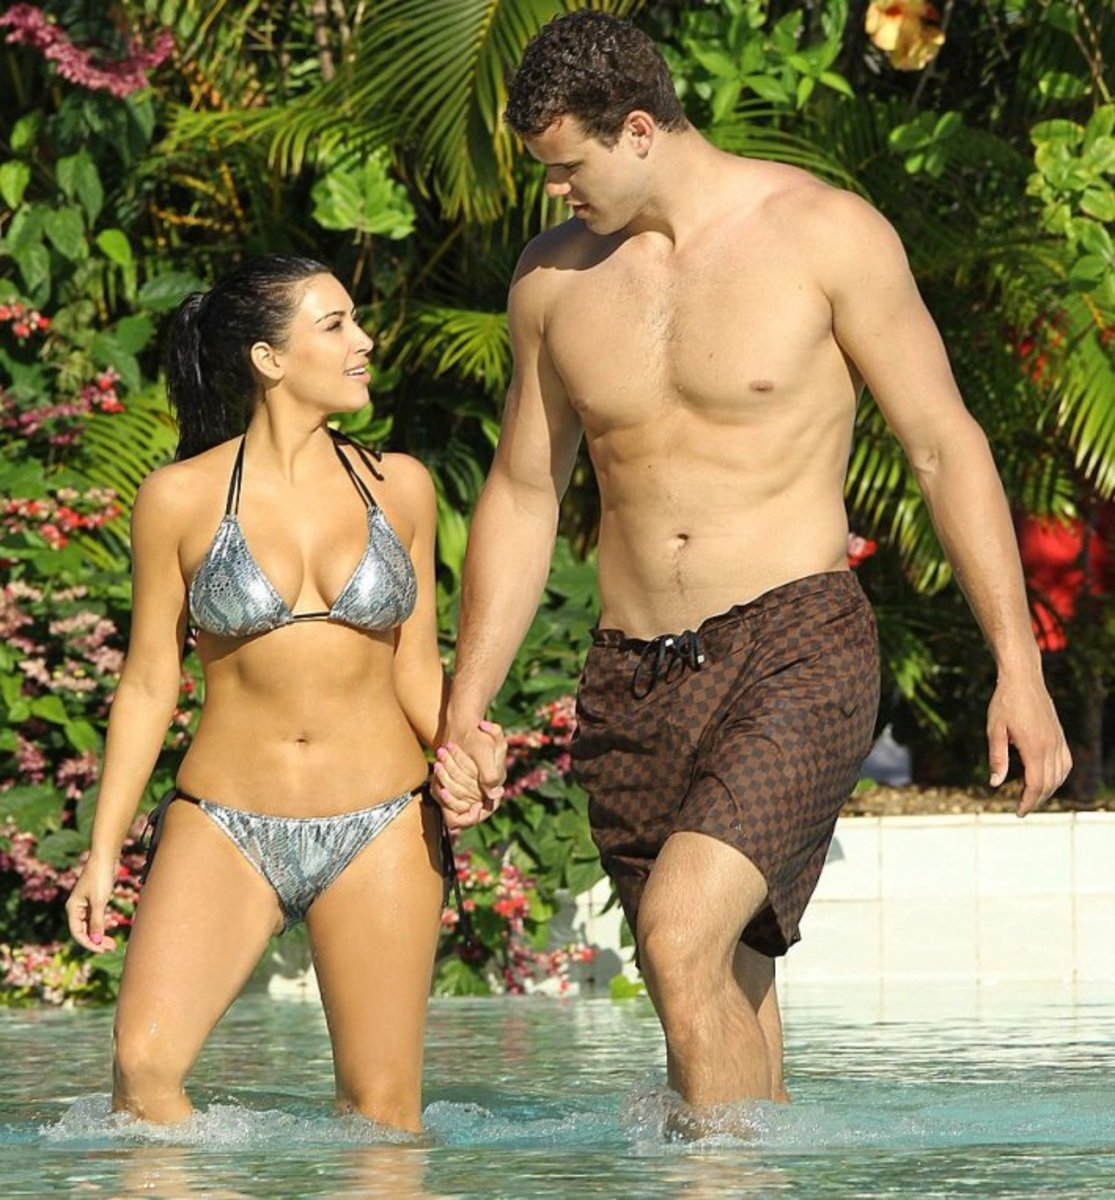 Media slammed the reality star's marriage to Kris Humphries as a publicity stunt. The entire ordeal was very controversial and put Kim back on the paparazzi radar as the events unfolded.